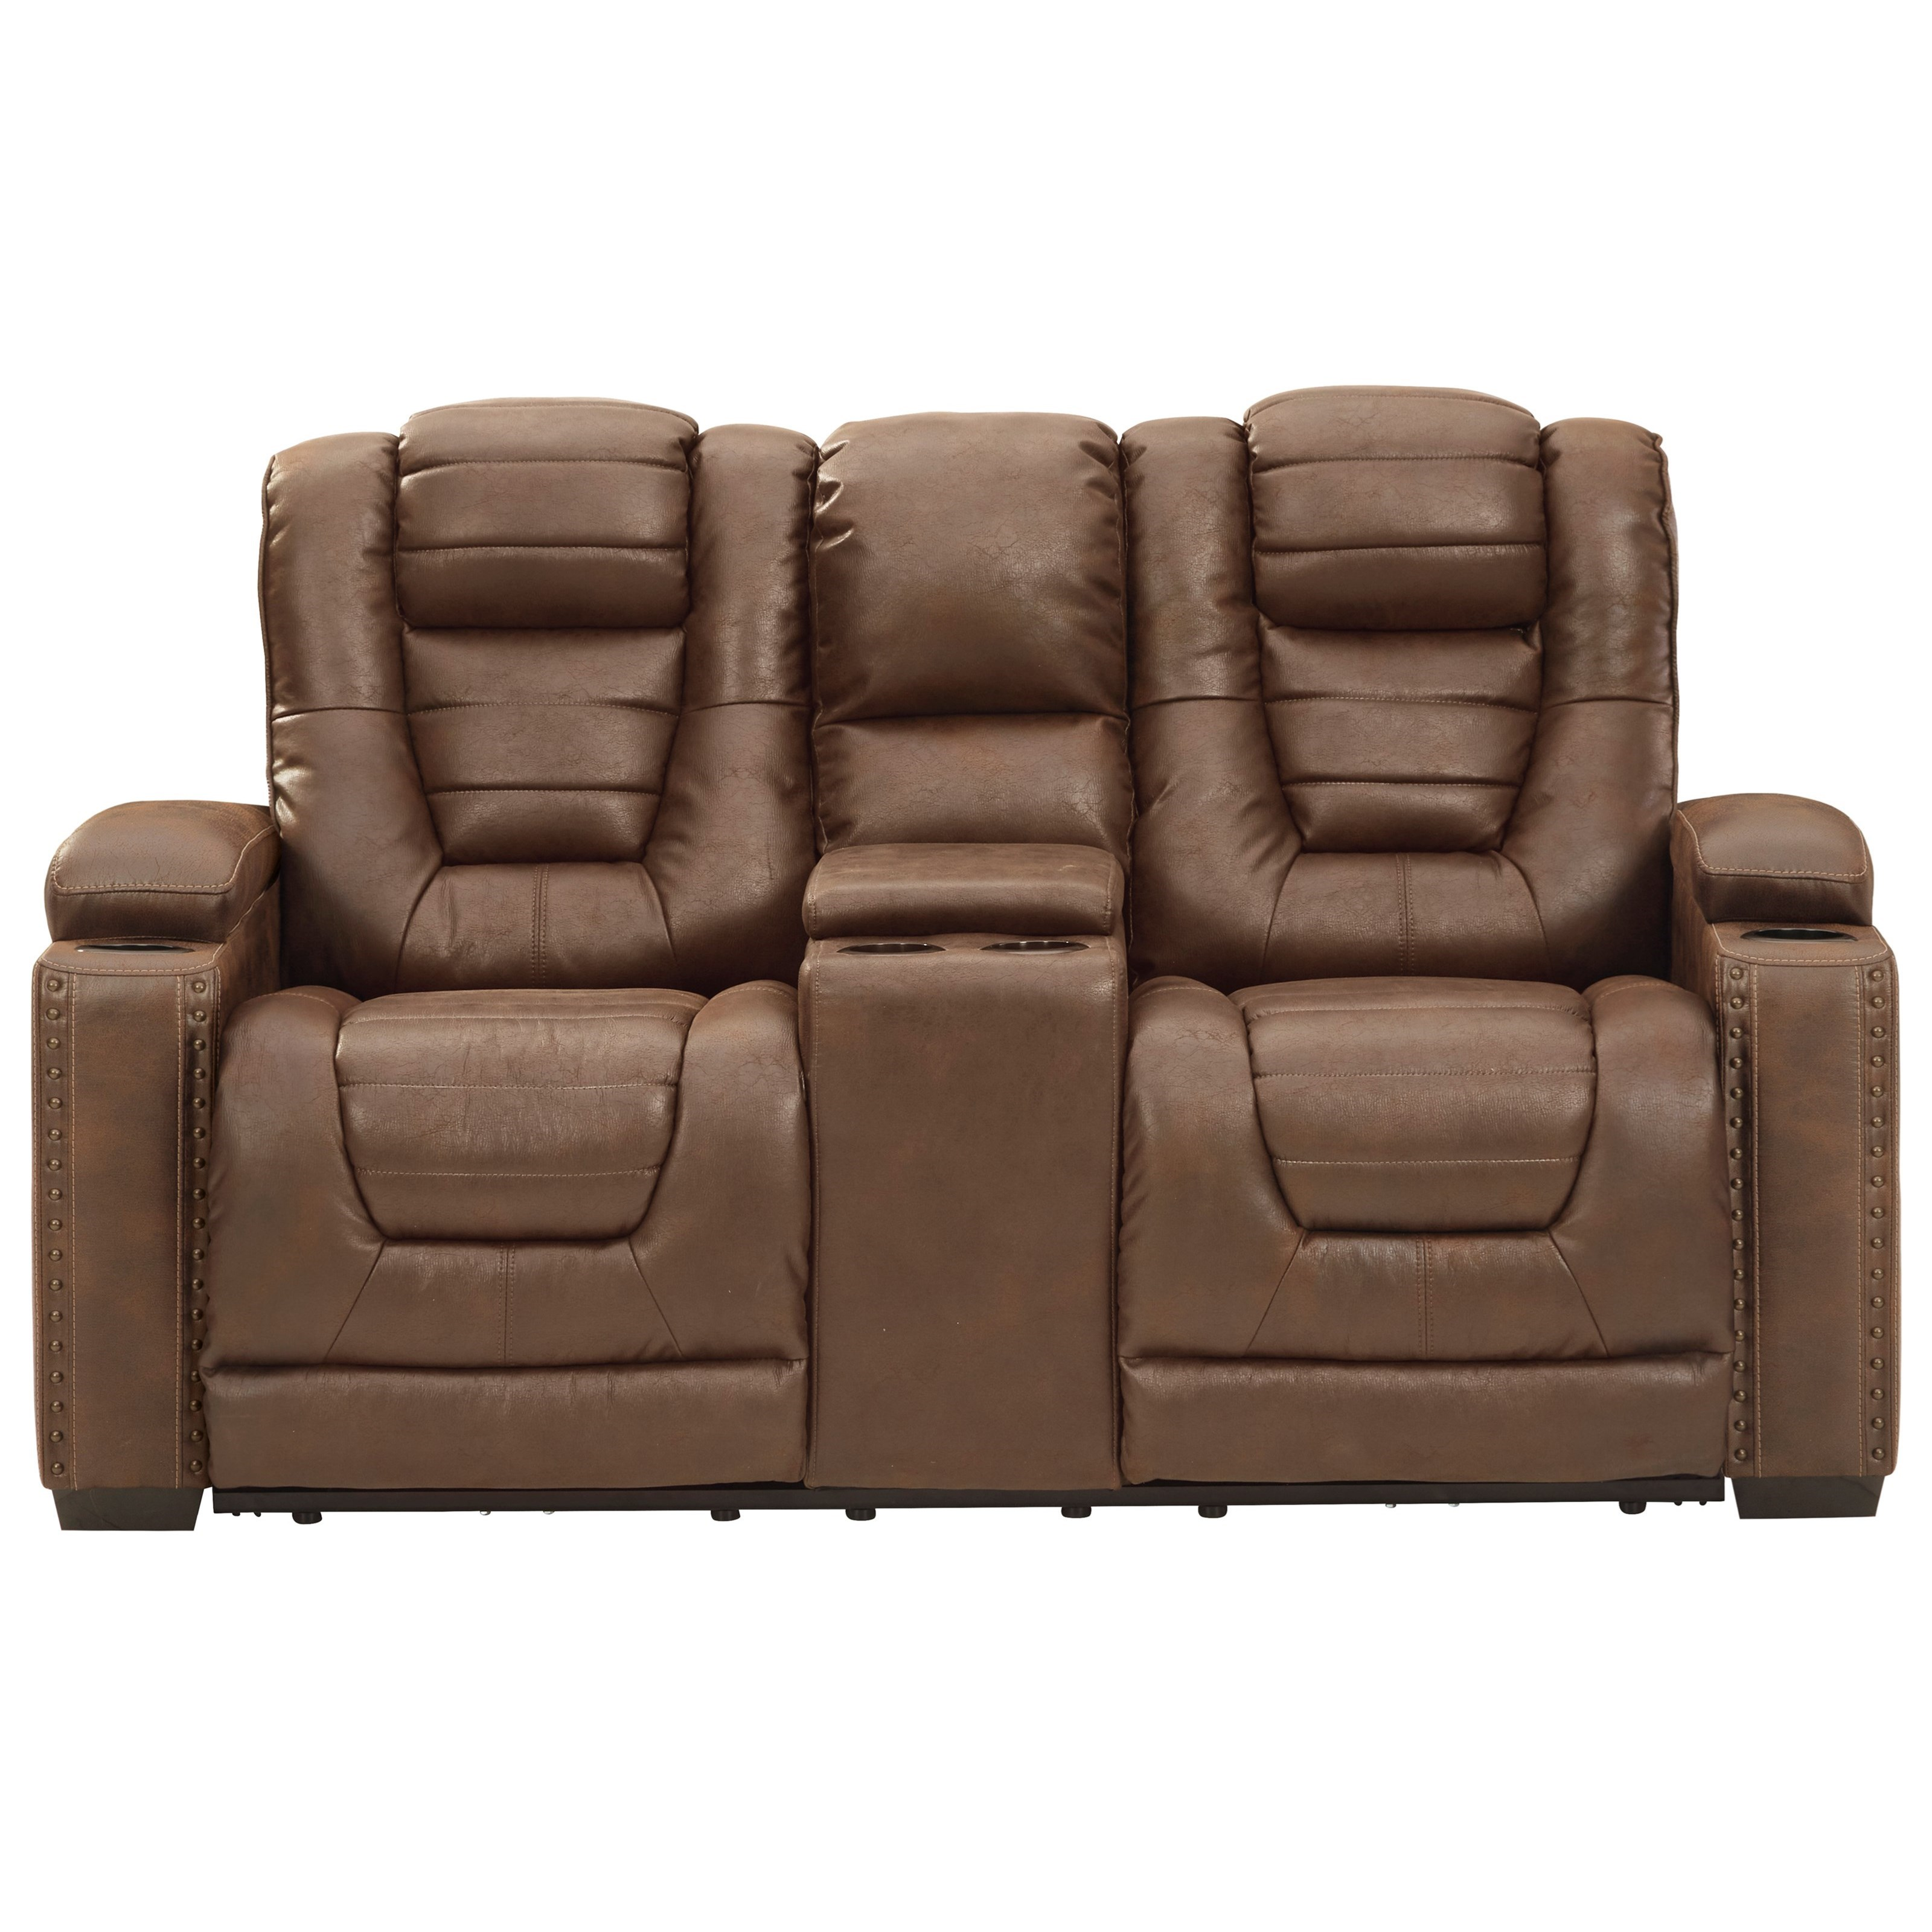 Owner's Box Power Rec Loveseat w/ Console & Adj Hdrsts by Signature Design by Ashley at Furniture Barn